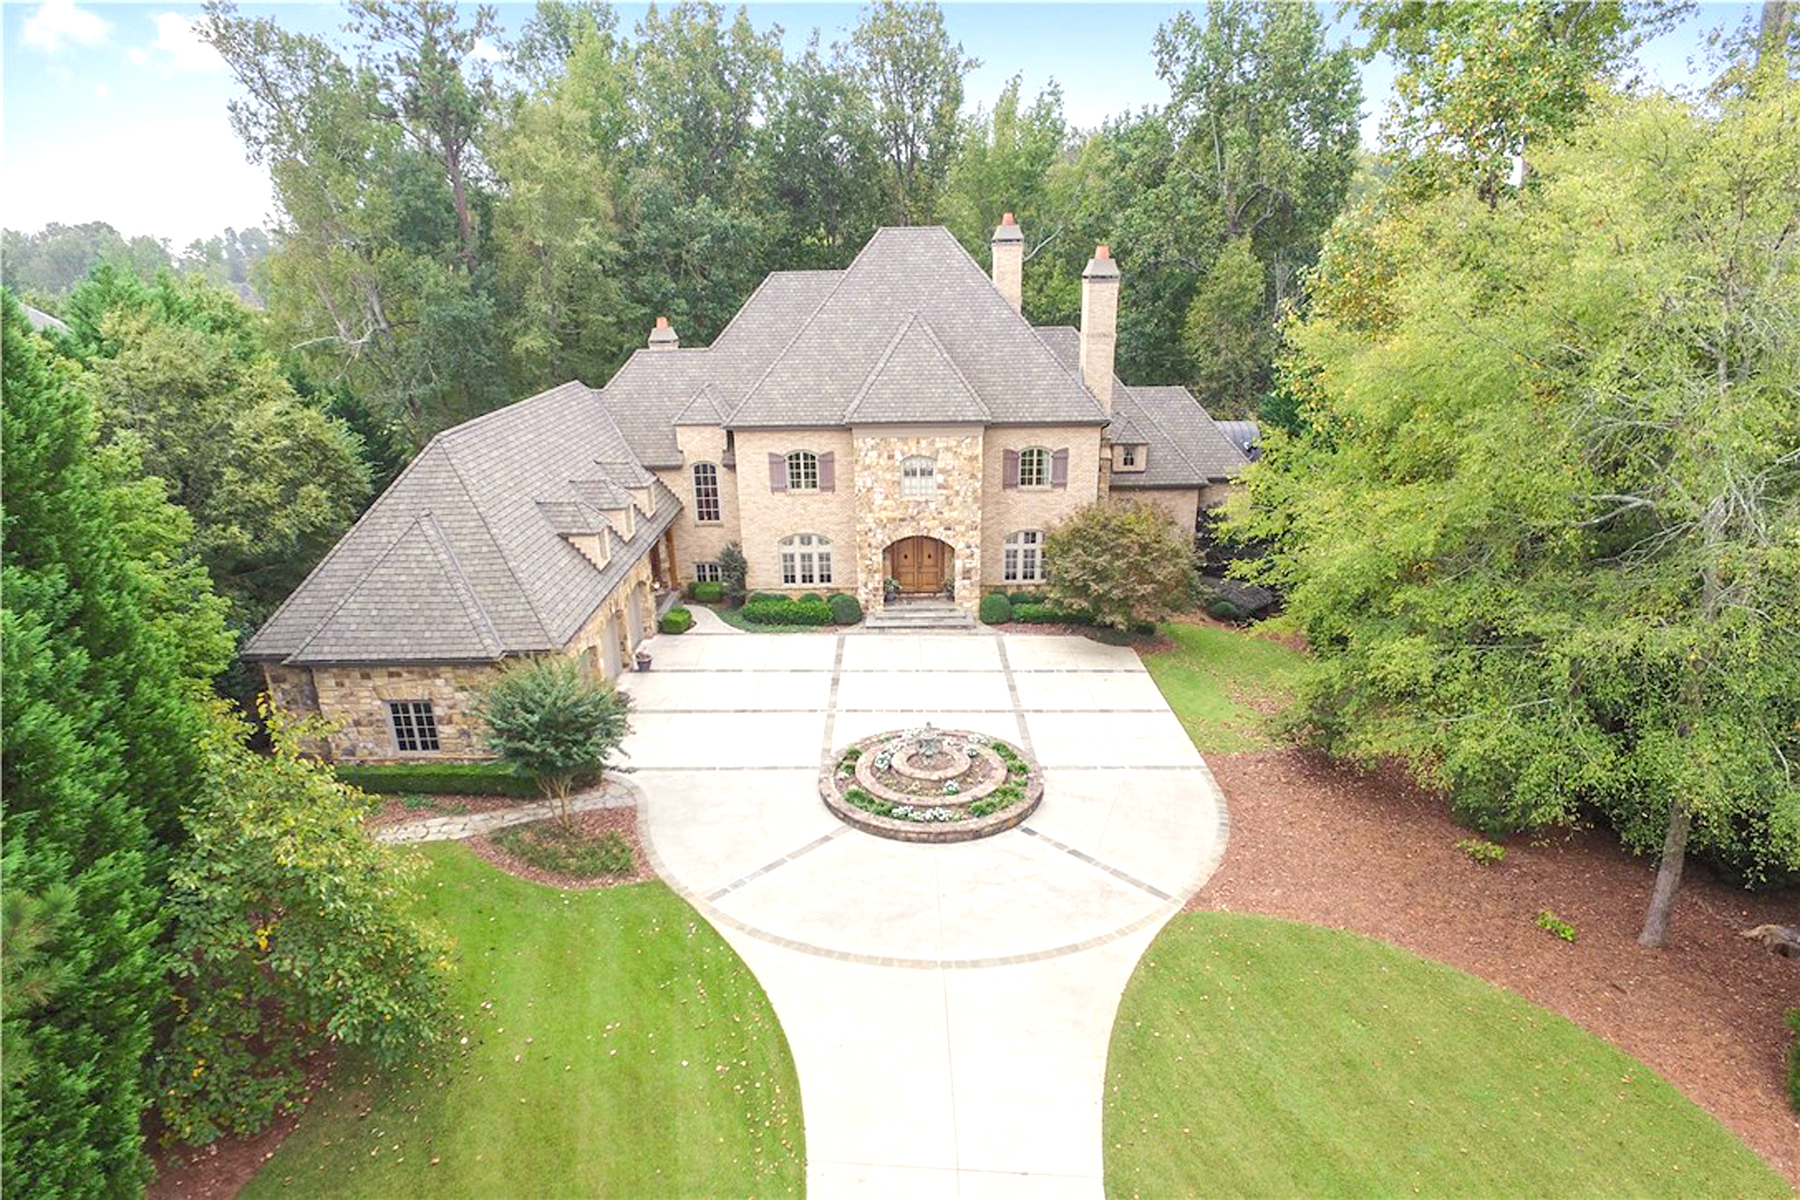 Single Family Home for Sale at Magnificent Custom Built Home In Sugarloaf Country Club 2442 Delbarton Place Duluth, Georgia 30097 United States